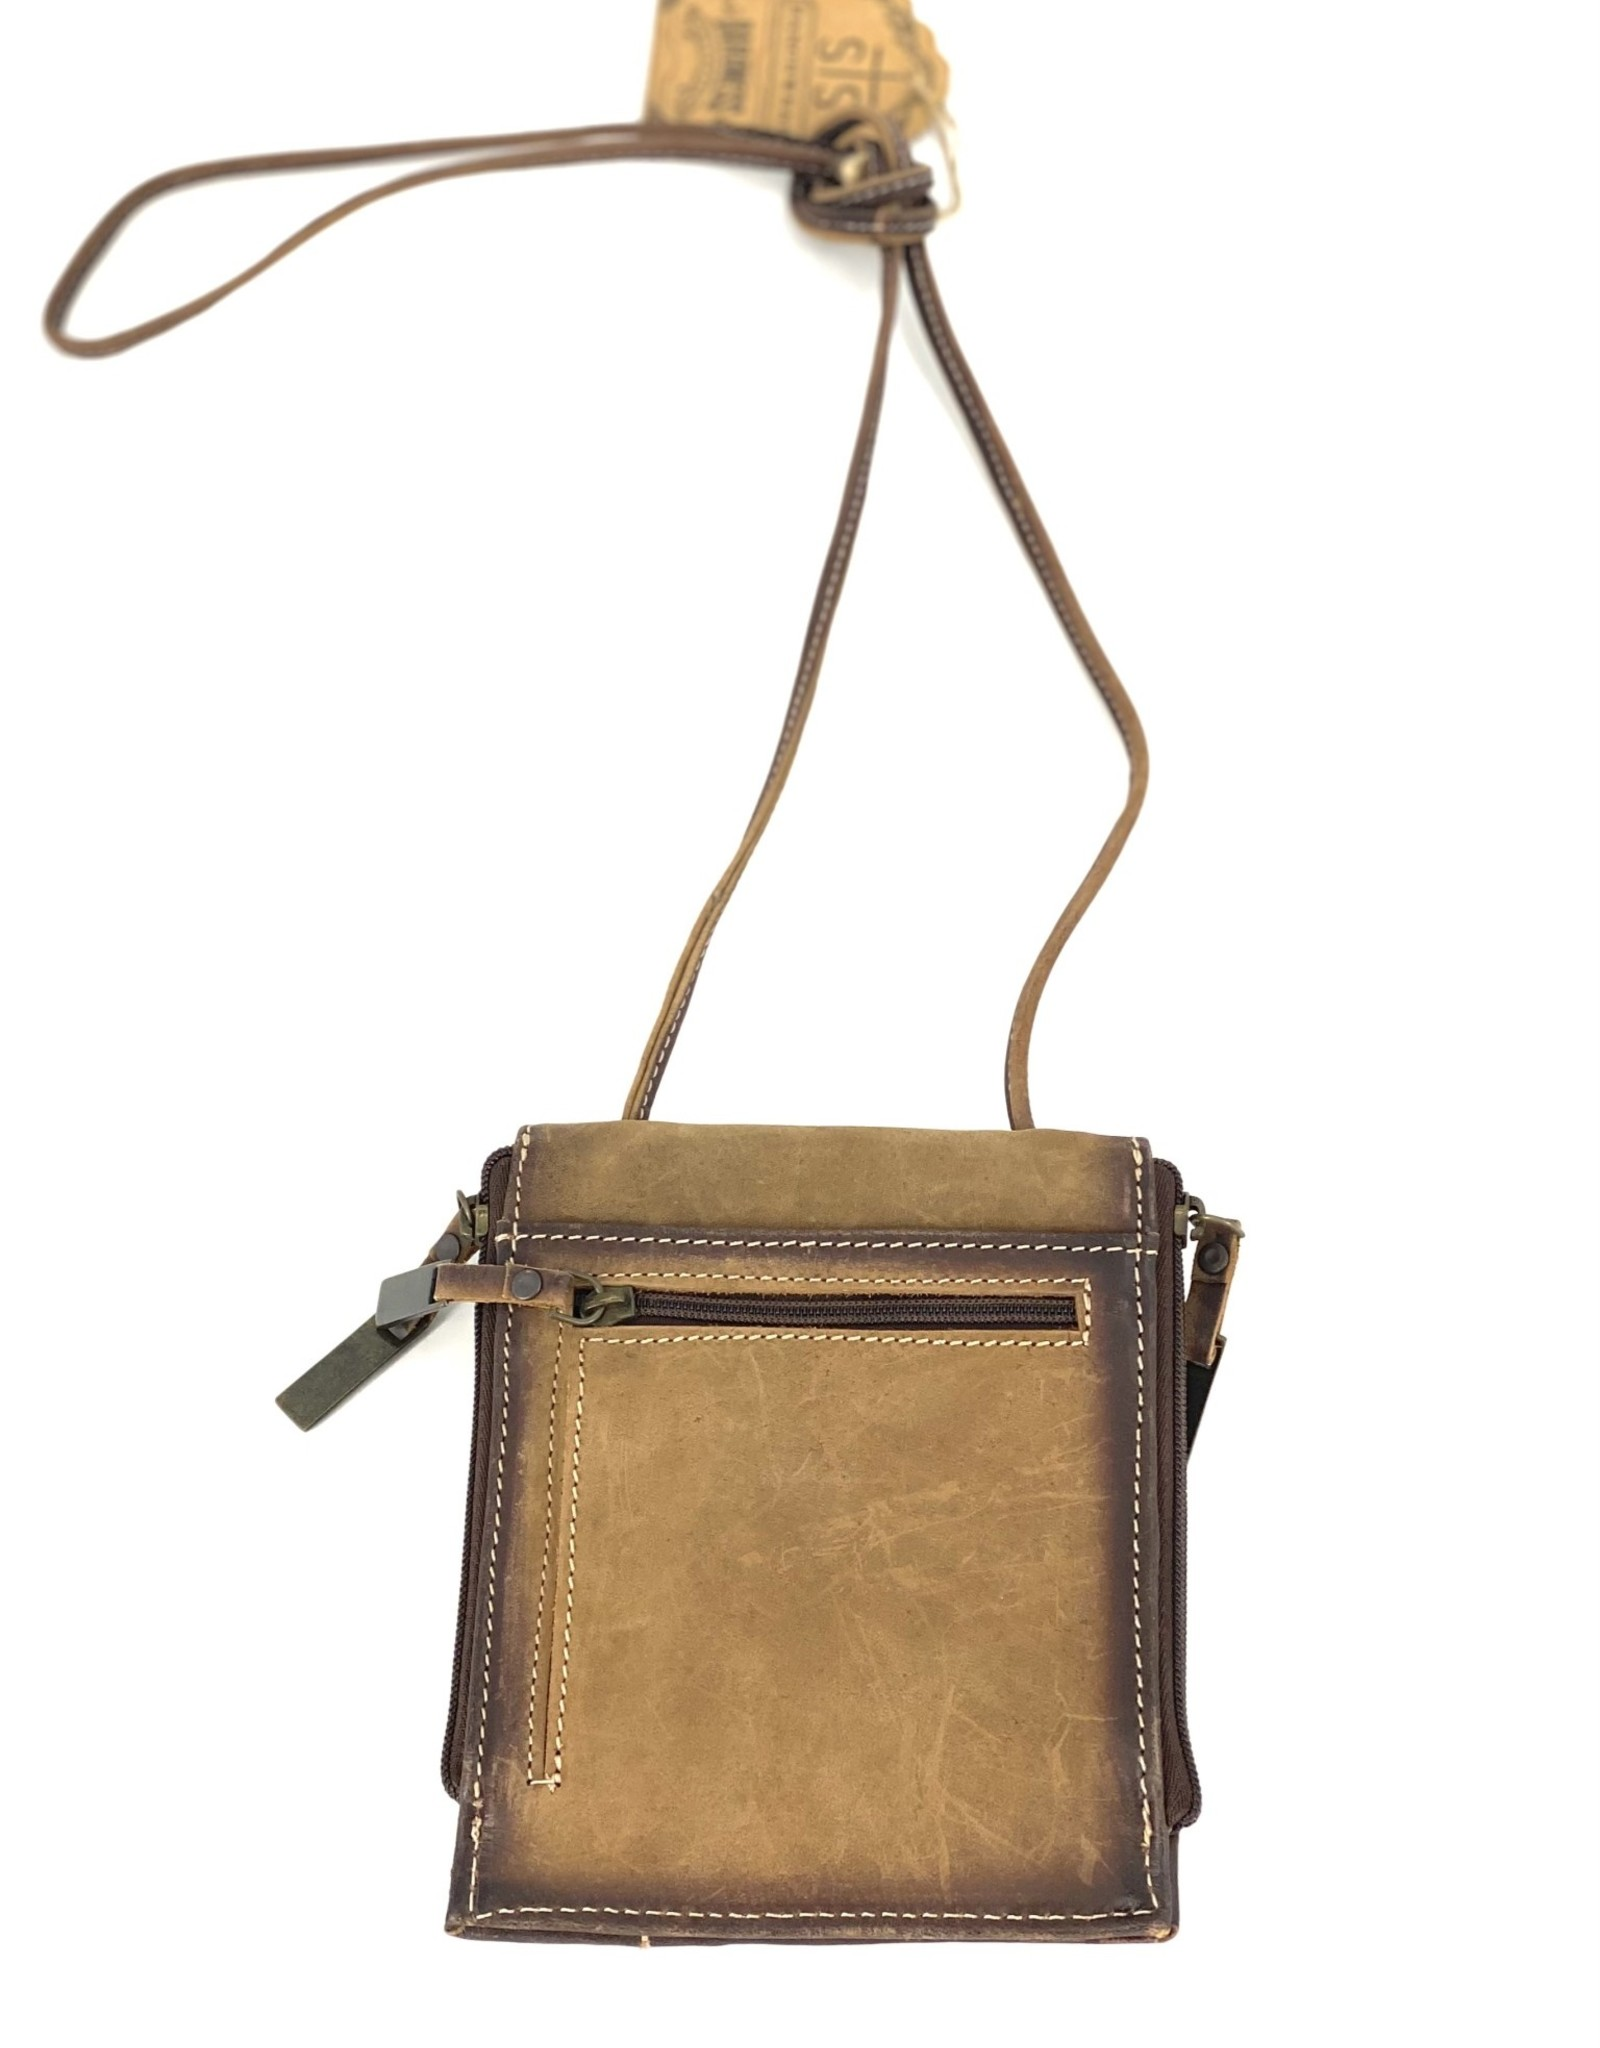 PURSE STS COWHIDE EURO CROSSBODY PURSE LEATHER